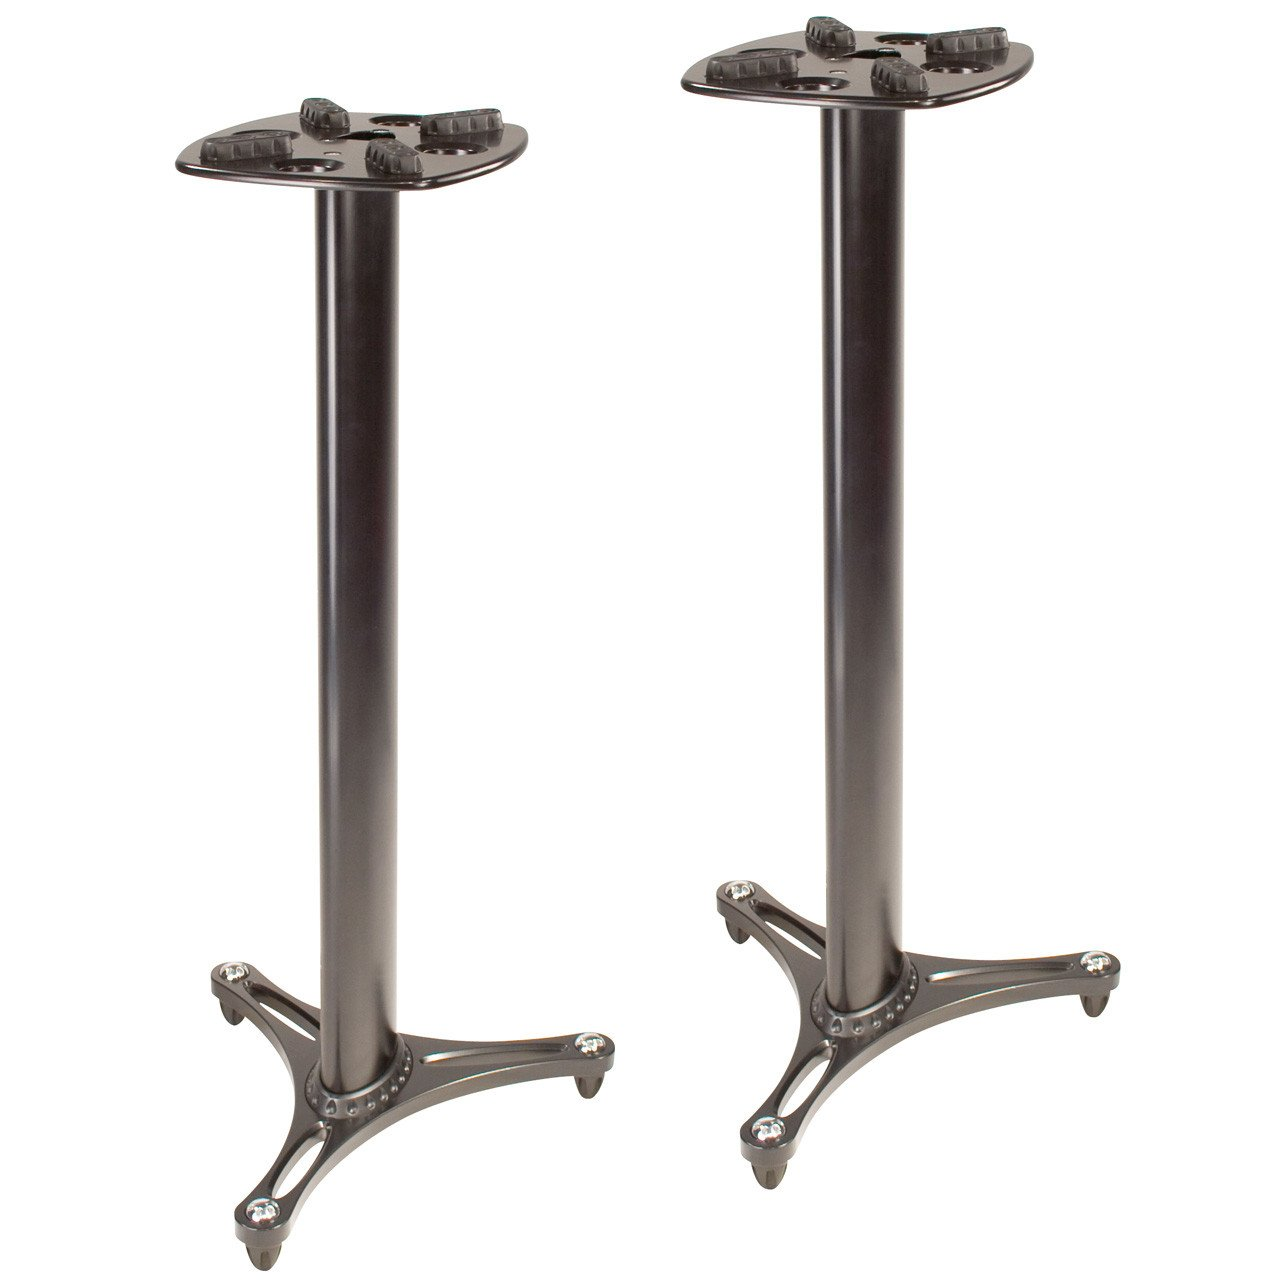 Studio Monitor Stands - Ultimate Support MS-90/45B Studio Monitor Stands